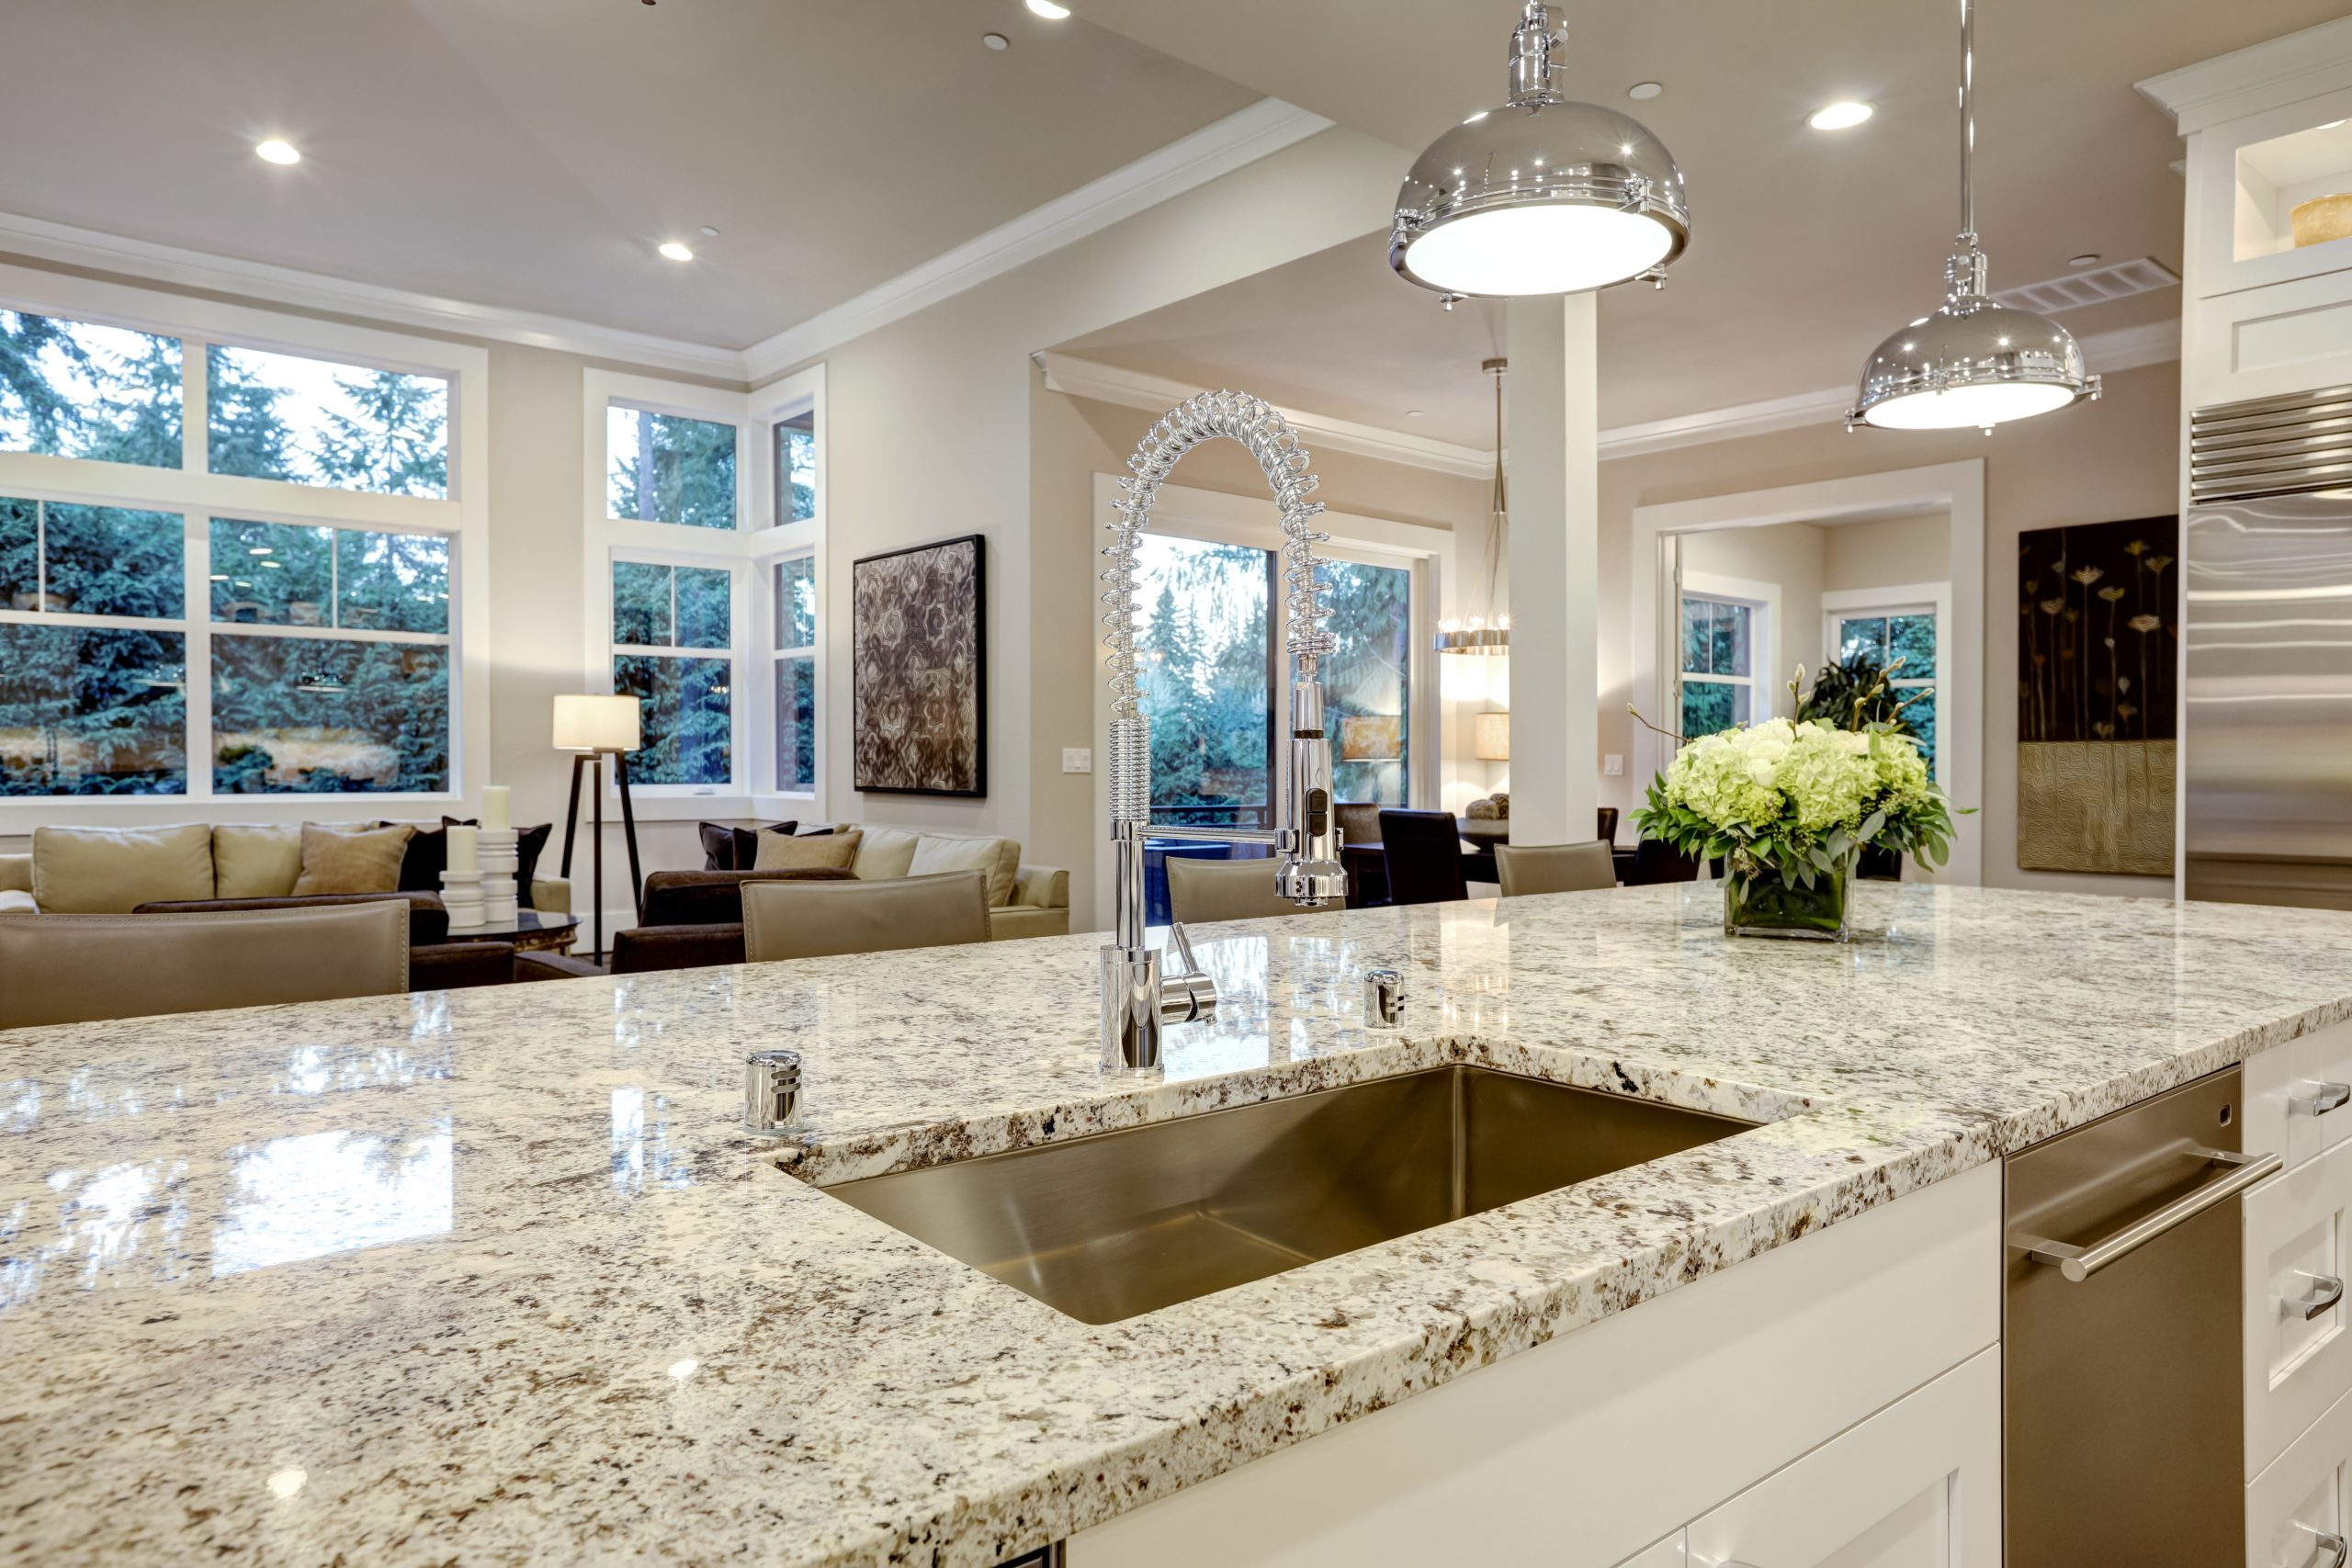 Is porcelain good for countertops?